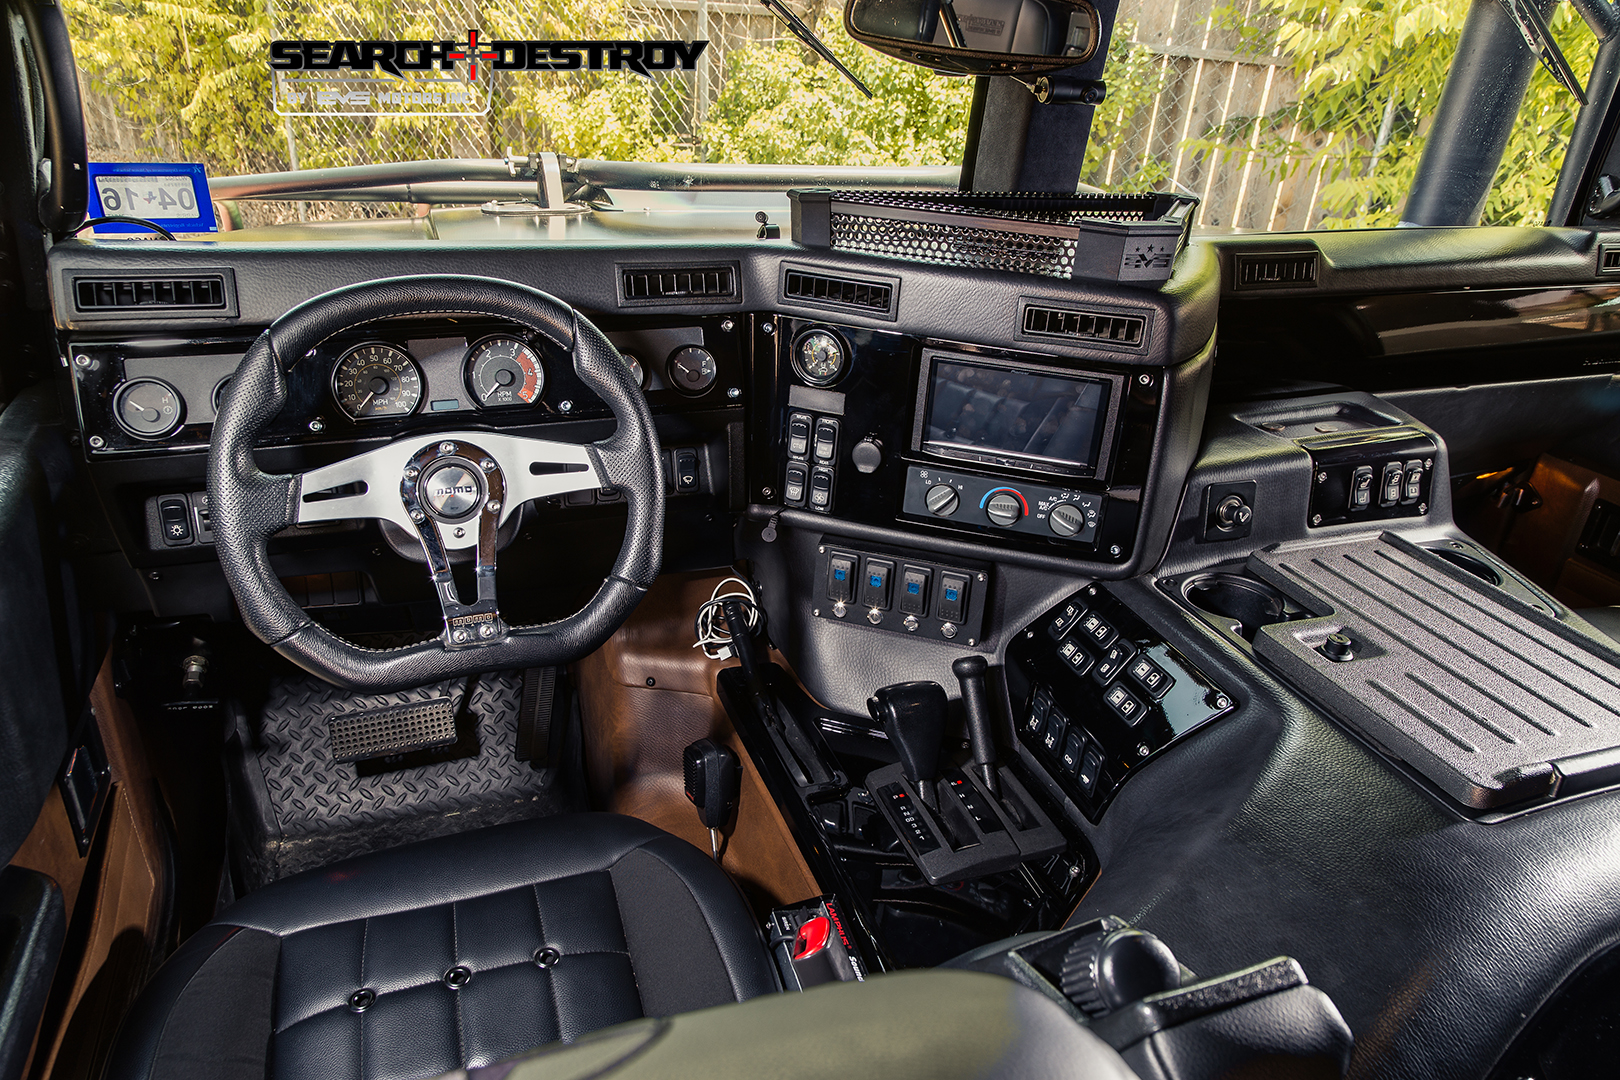 Hummer H1 Tactical Search & Destroy Tier 1 For Sale | EVS ...